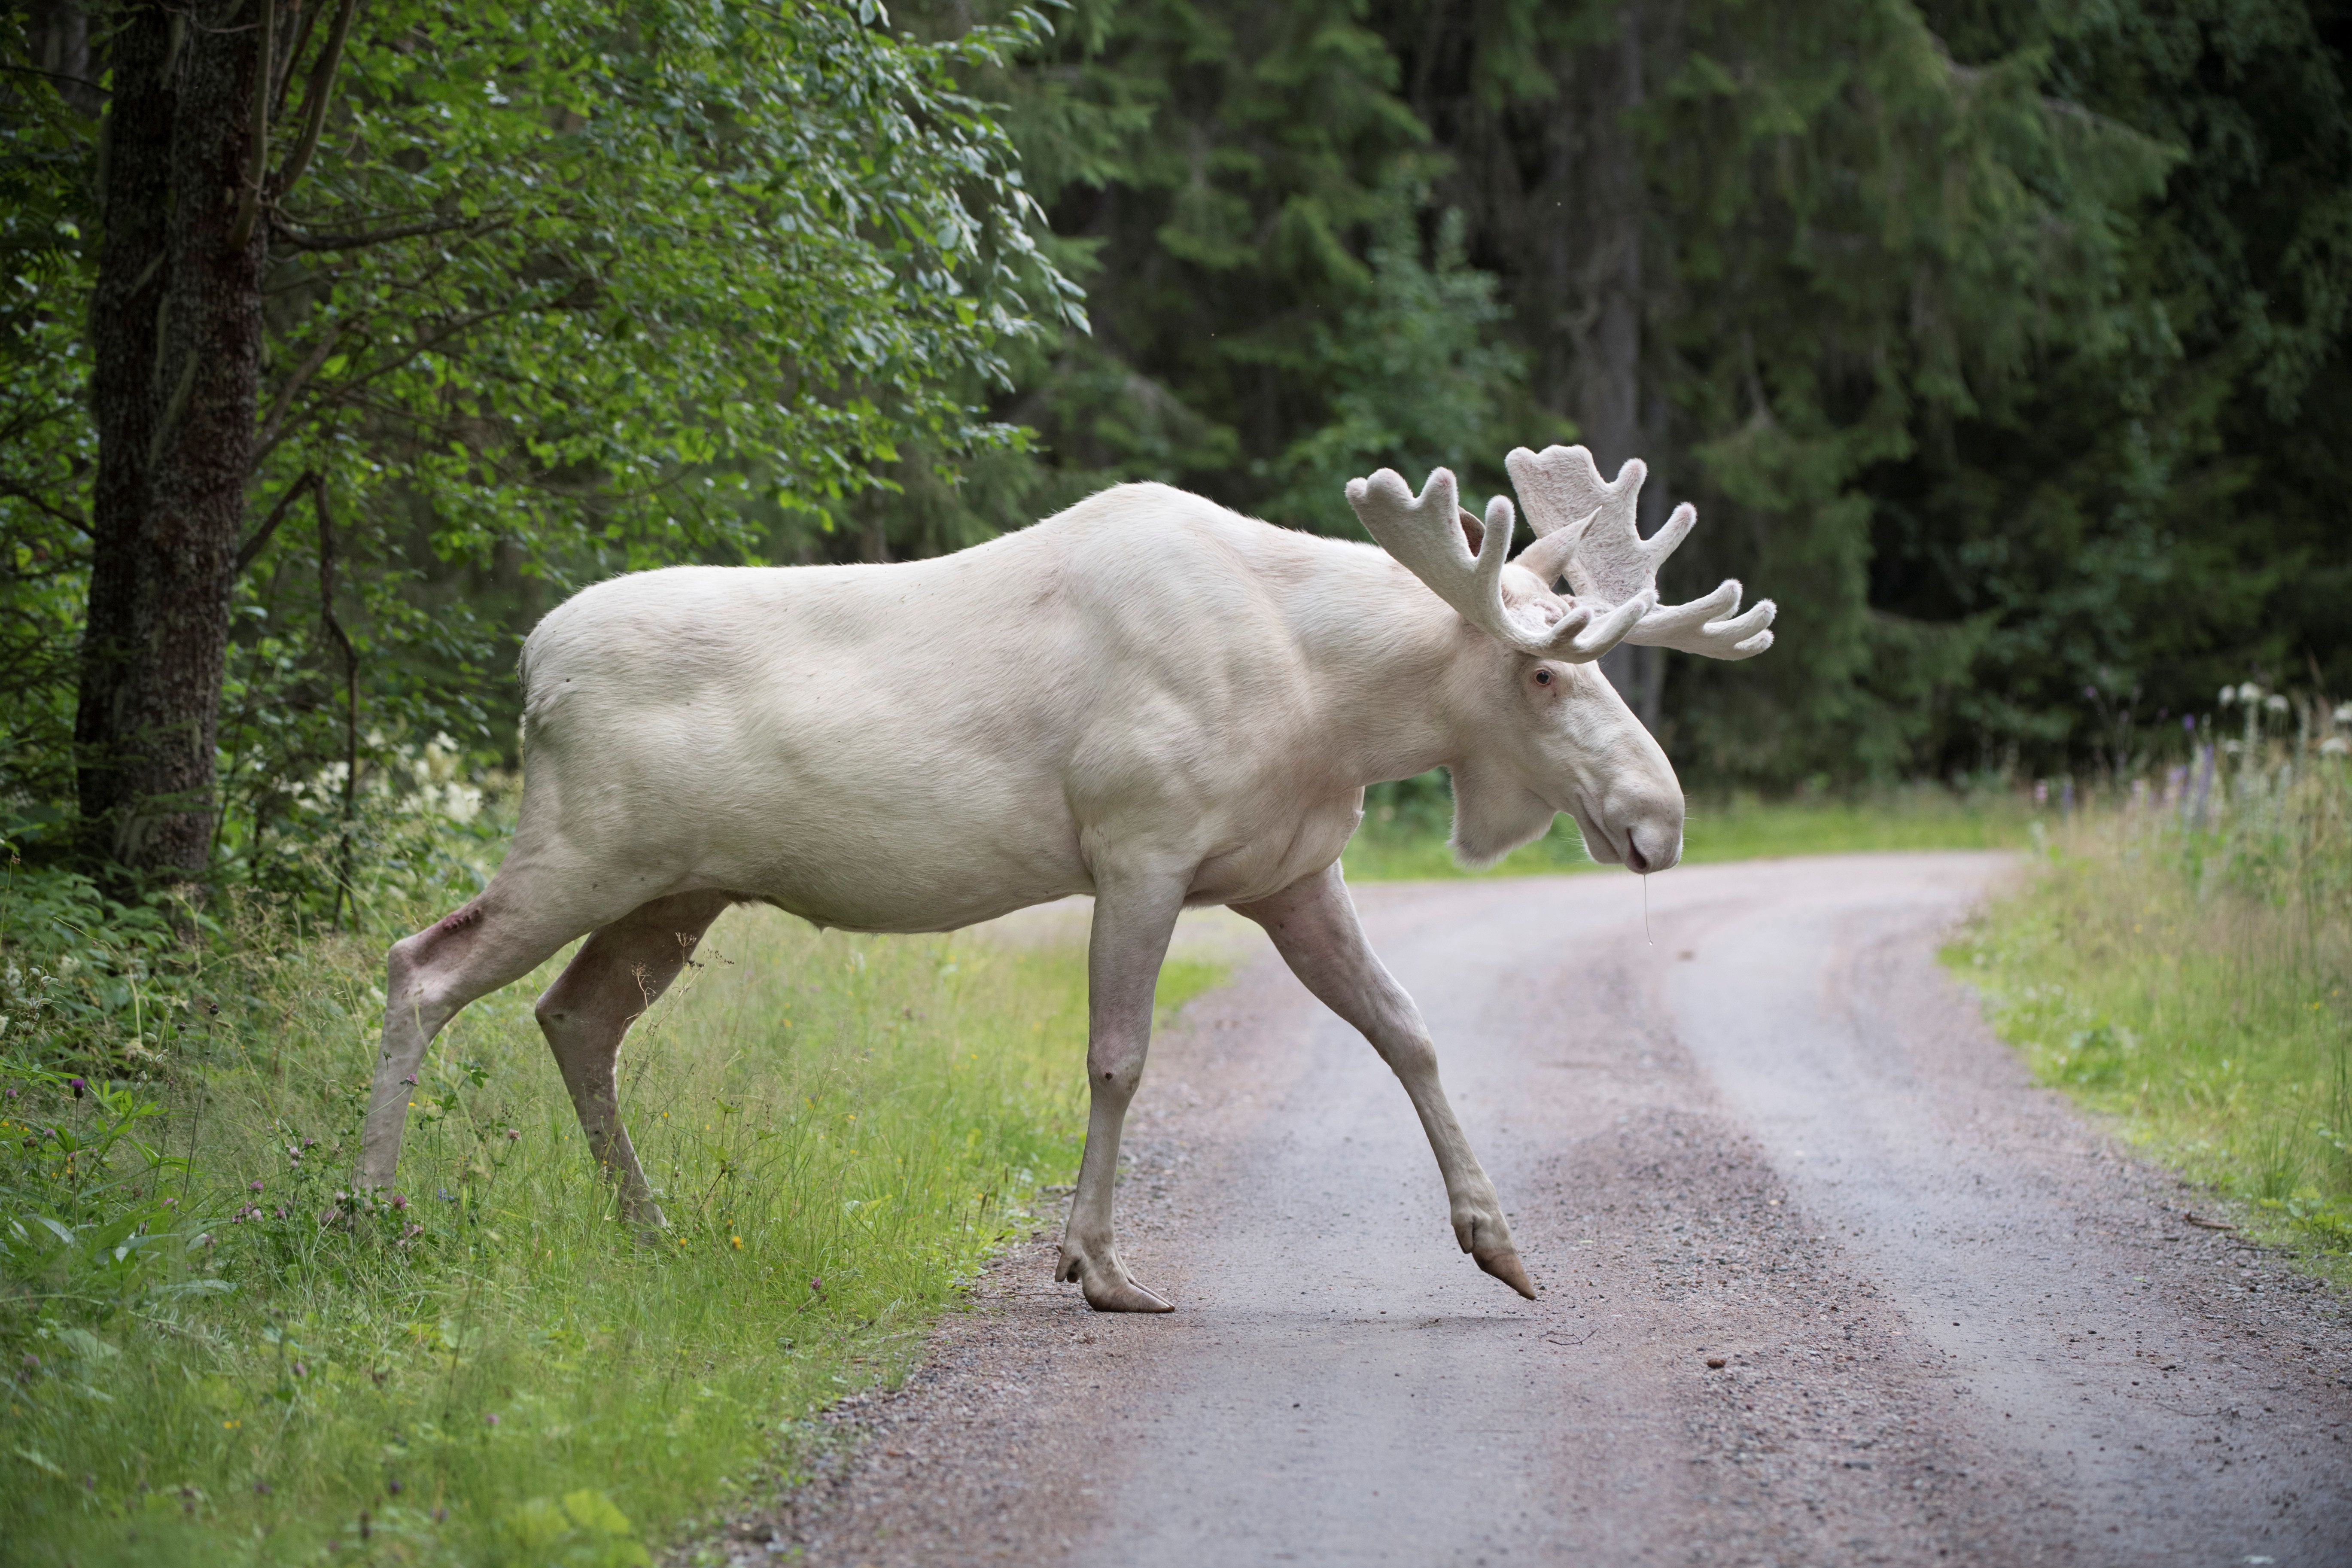 A rare white moose is seen in Gunnarskog, Varmland, Sweden July 31, 2017. Picture taken July 31, 2017. TT News Agency/Tommy Pedersen via REUTERS  ATTENTION EDITORS - THIS IMAGE WAS PROVIDED BY A THIRD PARTY. SWEDEN OUT. NO COMMERCIAL OR EDITORIAL SALES IN SWEDEN